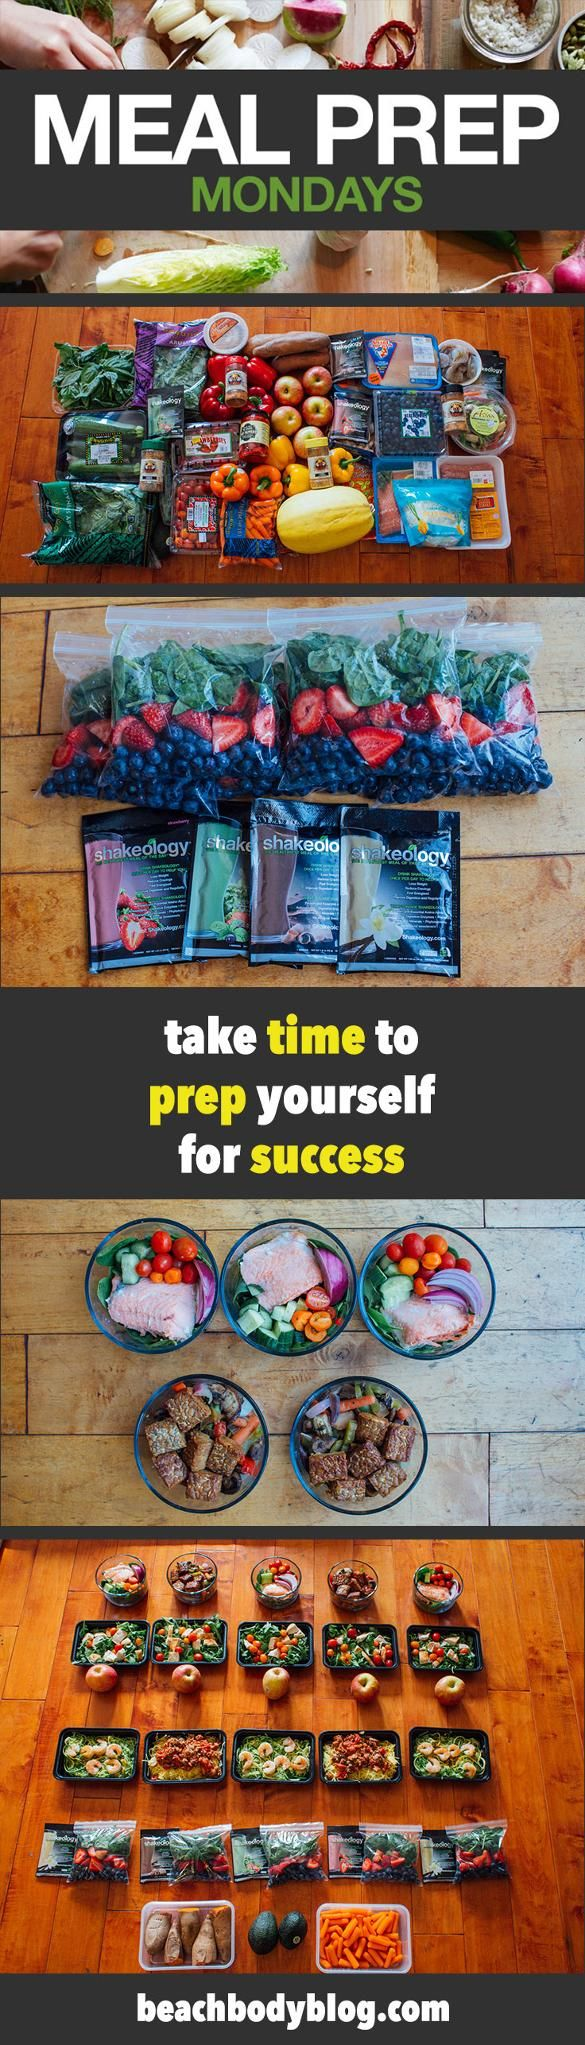 Try this one simple tip to make your morning meal preps even faster. http://www.beachbodycoach.com/ashleyj0914